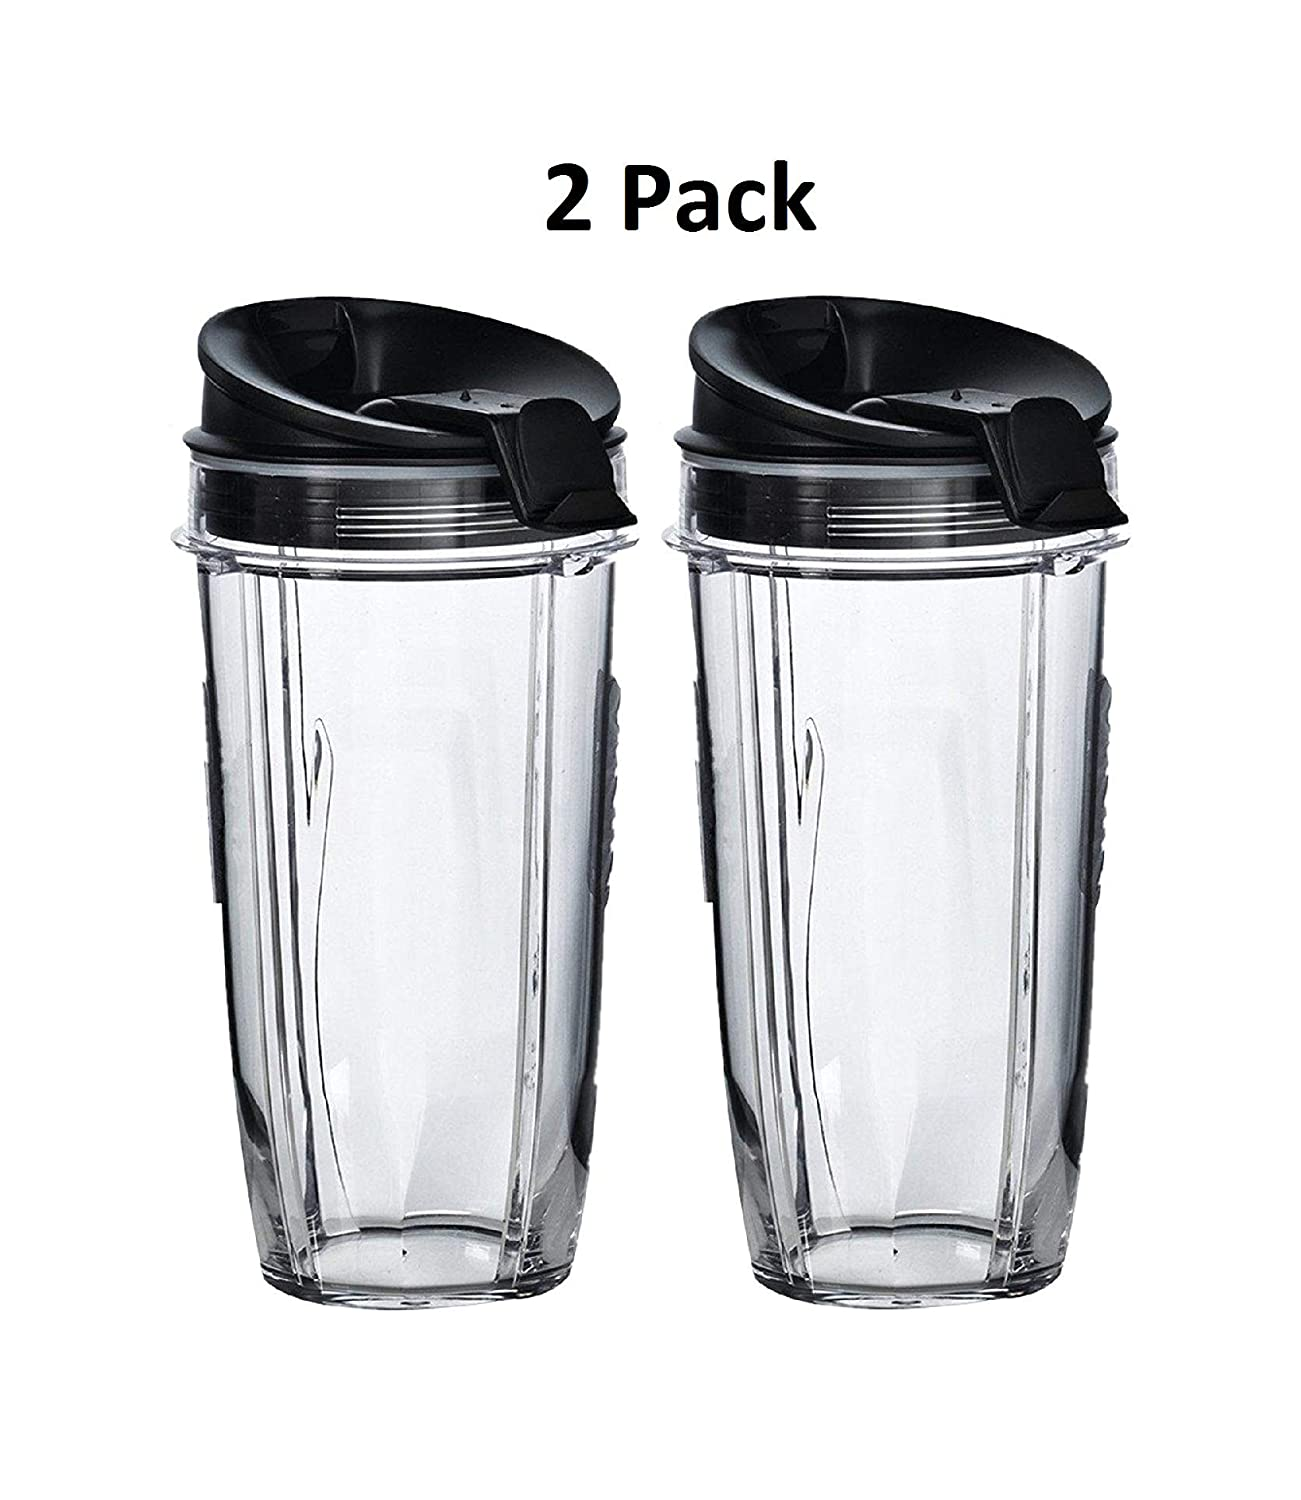 Ninja Pro Replacement Nutri Ninja 24 oz Cup with Sip & Seal Lid - For Blender BL450 BL454 Auto-iQ BL480 BL481 BL482 BL687 (2-Pack)